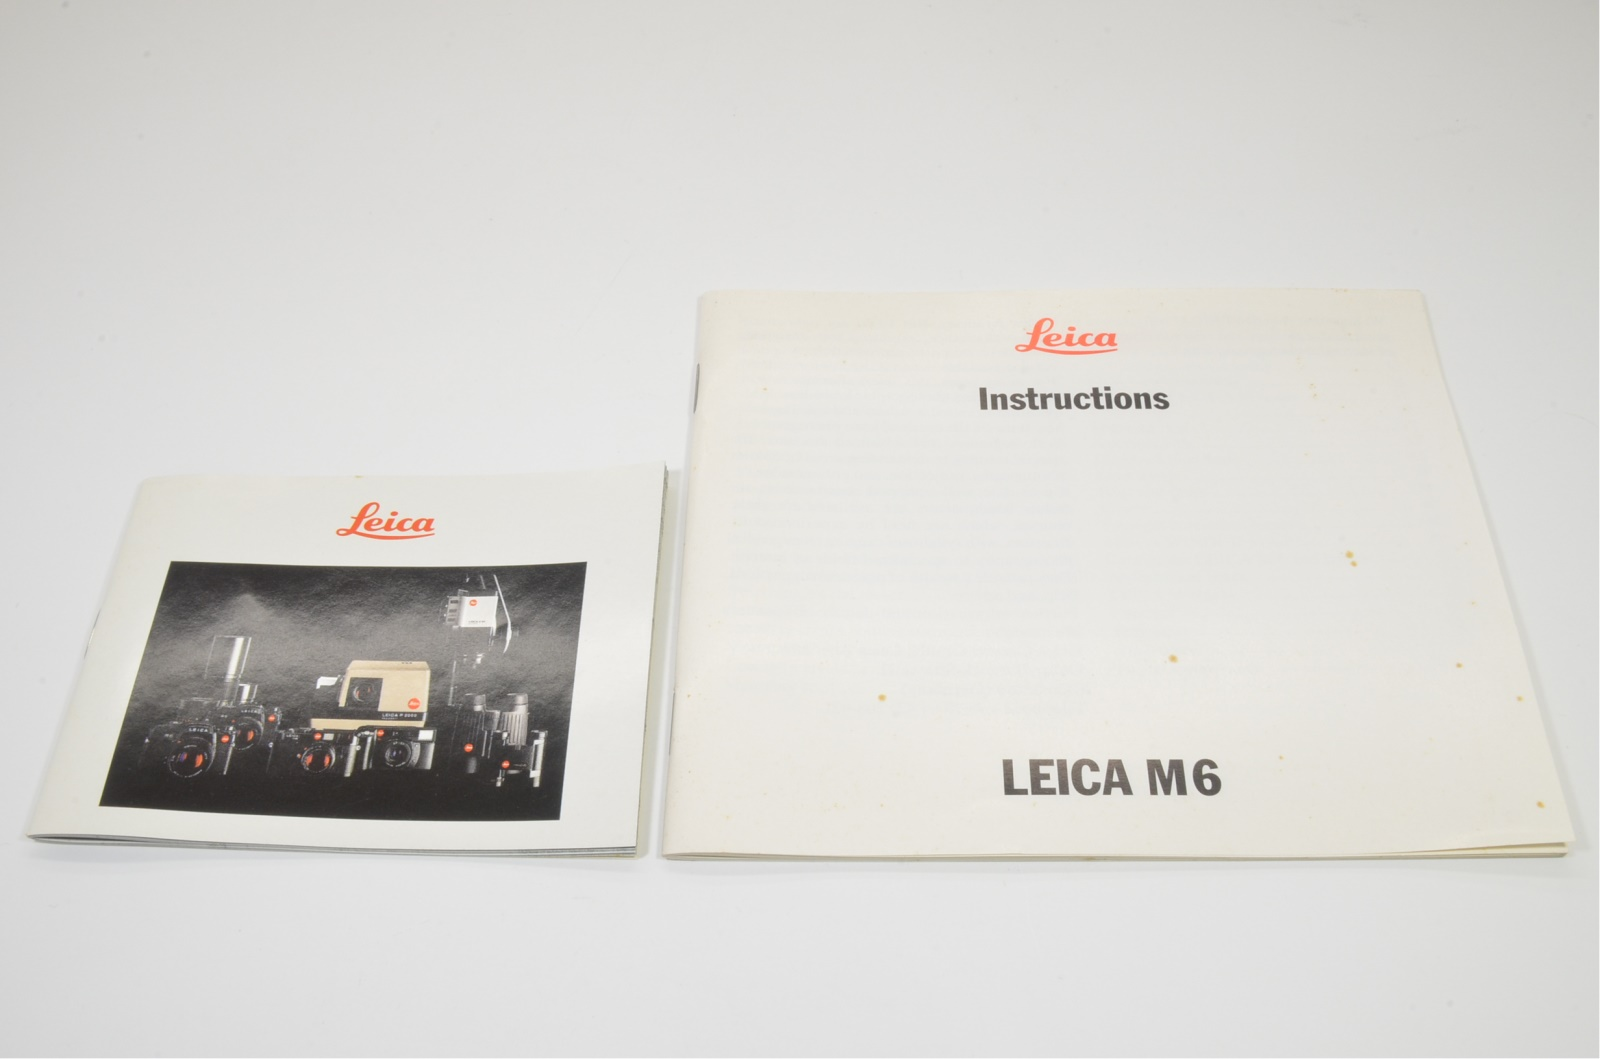 leica m6 (10412) plastic case only with english instructions from japan